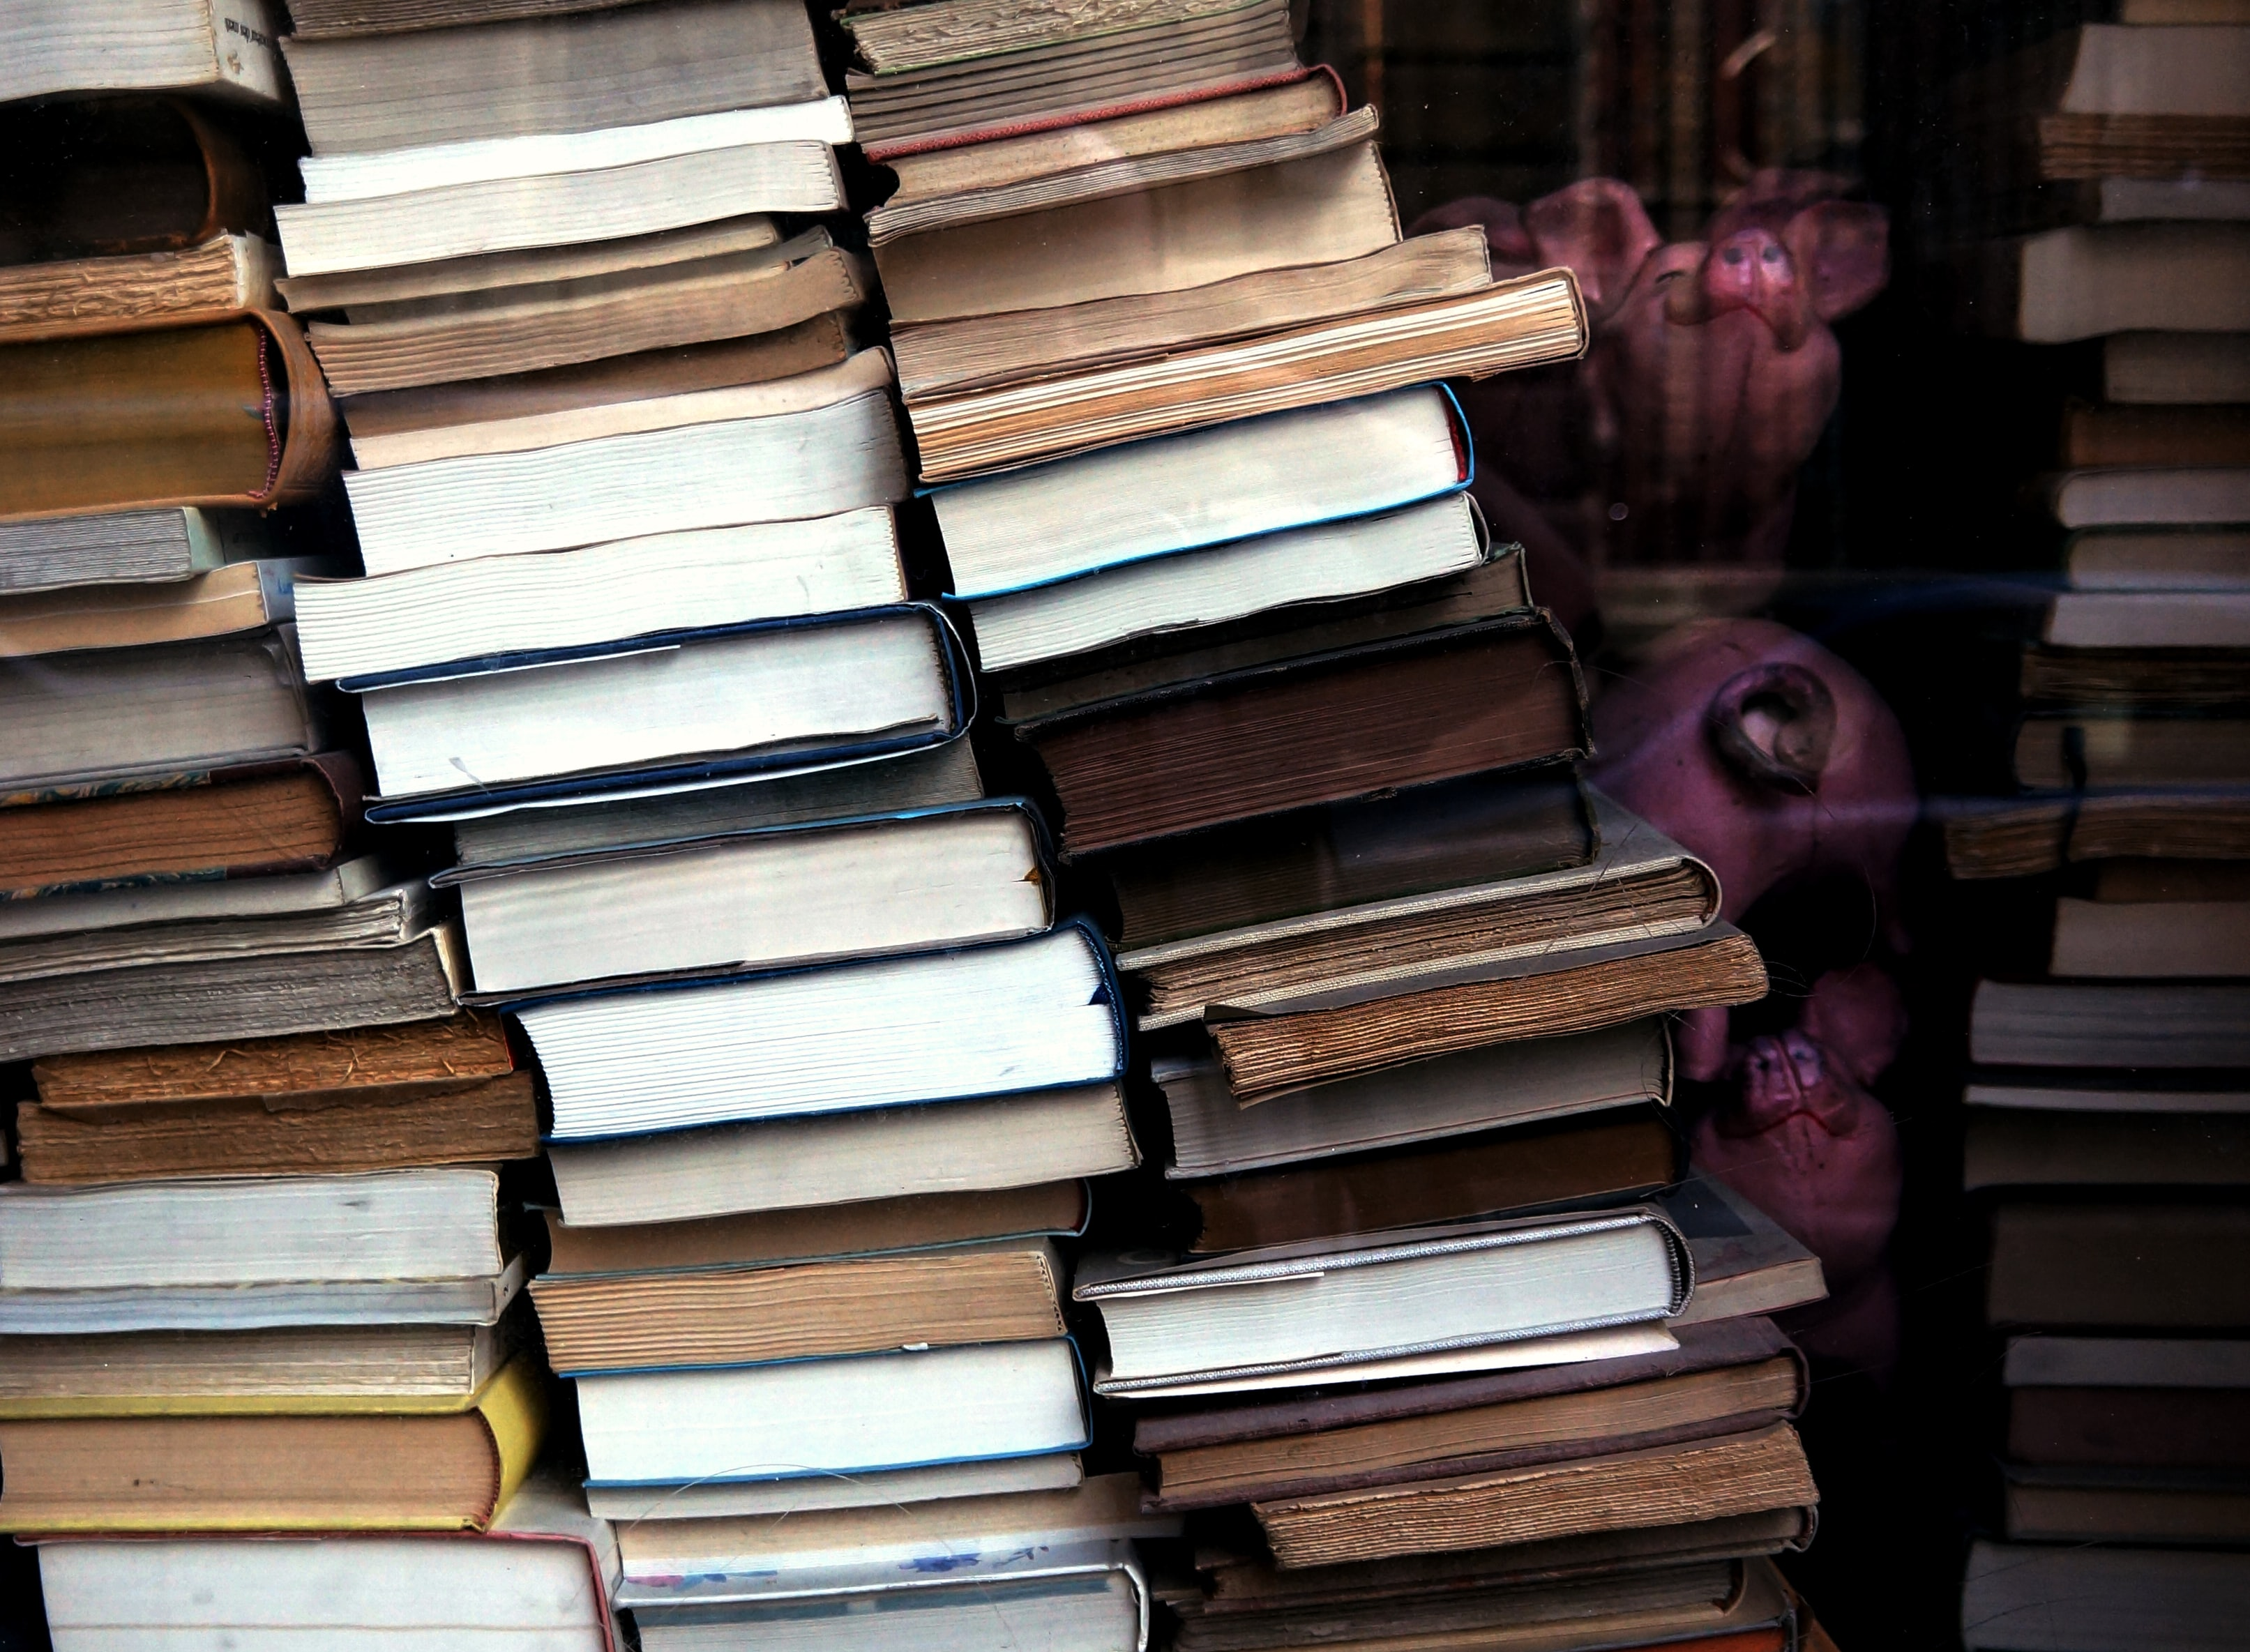 Stacks of antique second-hand hardback books piled up inside of a store window.